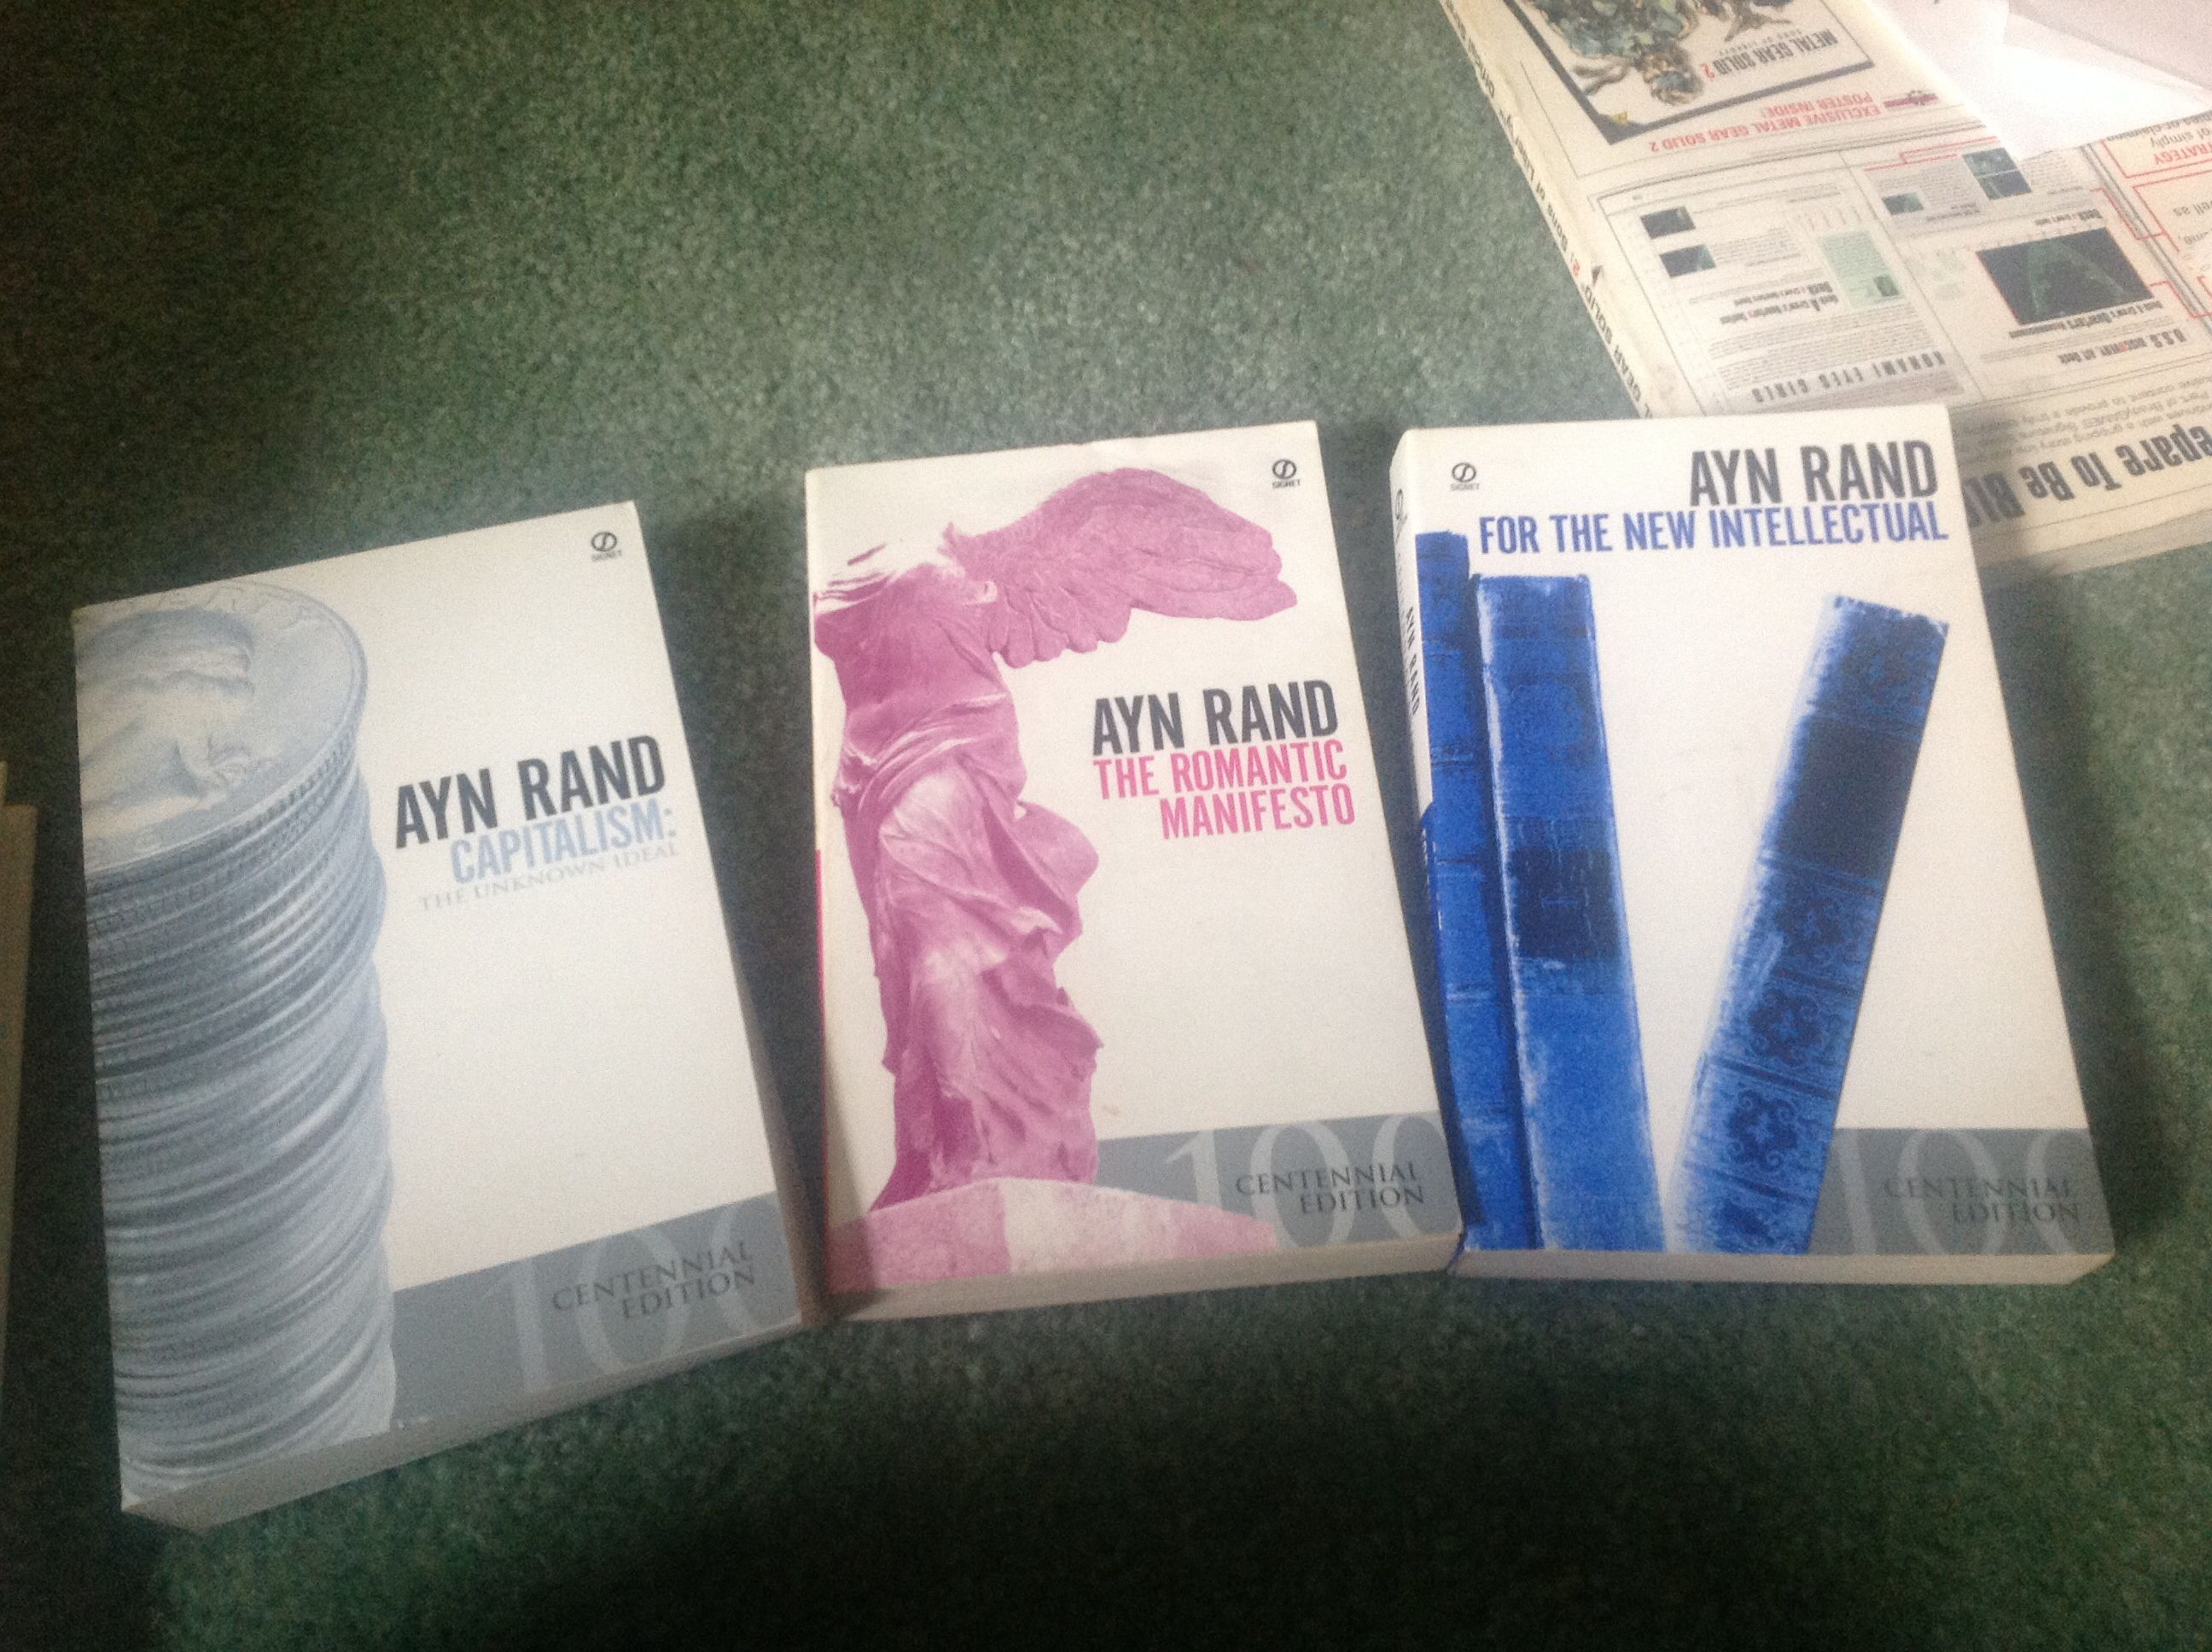 Ayn Rand Libros Ayn Rand Capitalism The Romantic Manifesto And For The